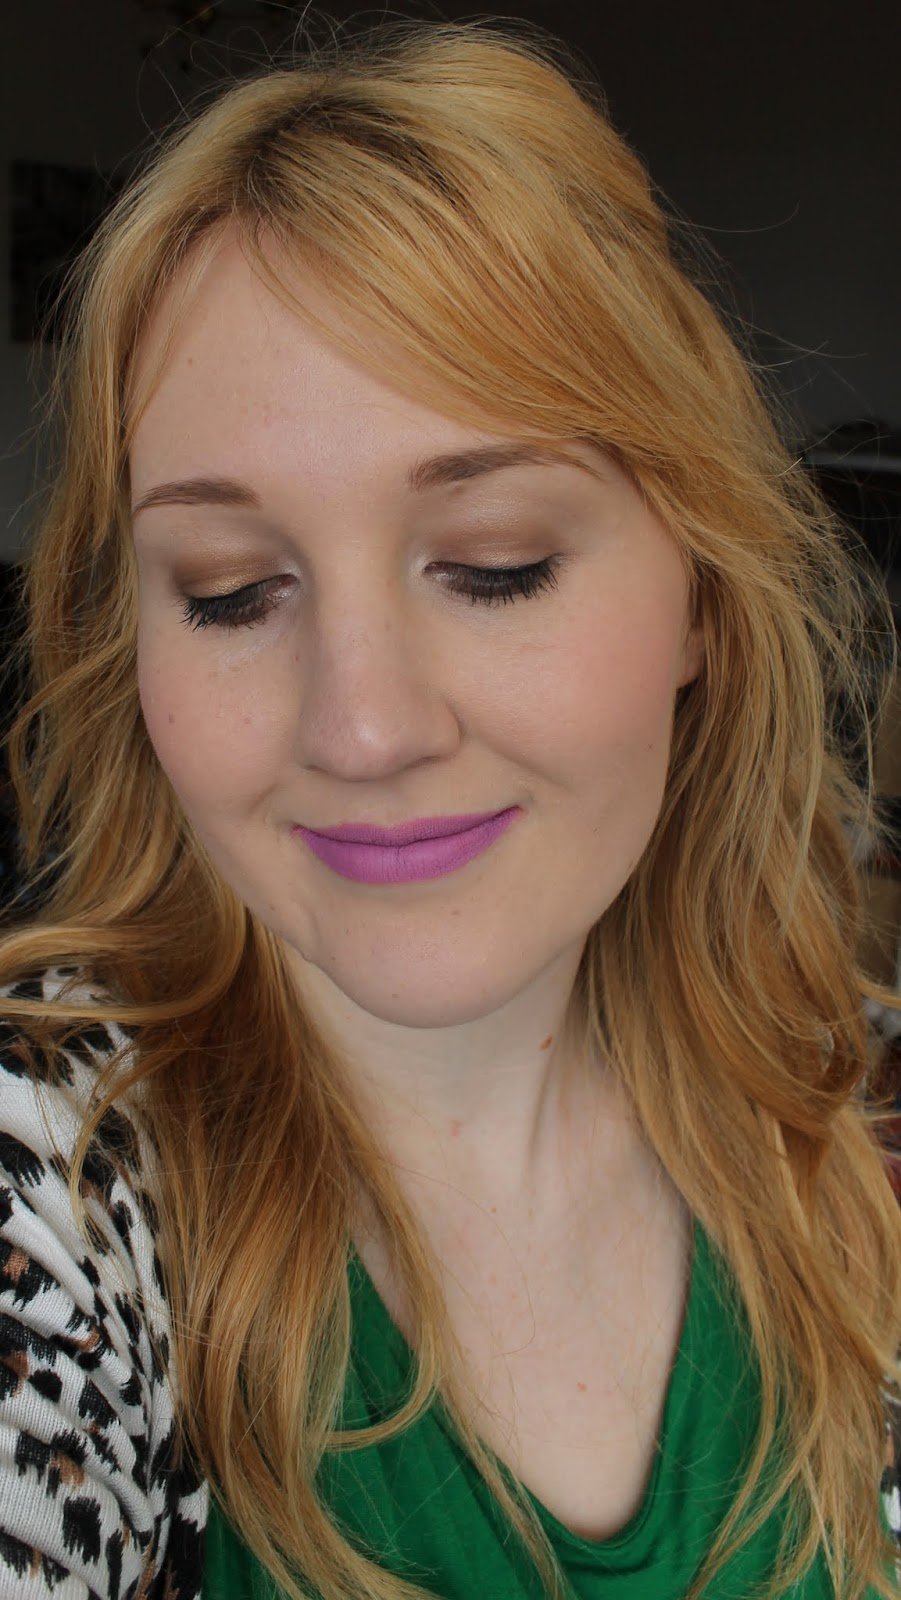 MAC Dodgy Girl Lipstick Swatches & Review